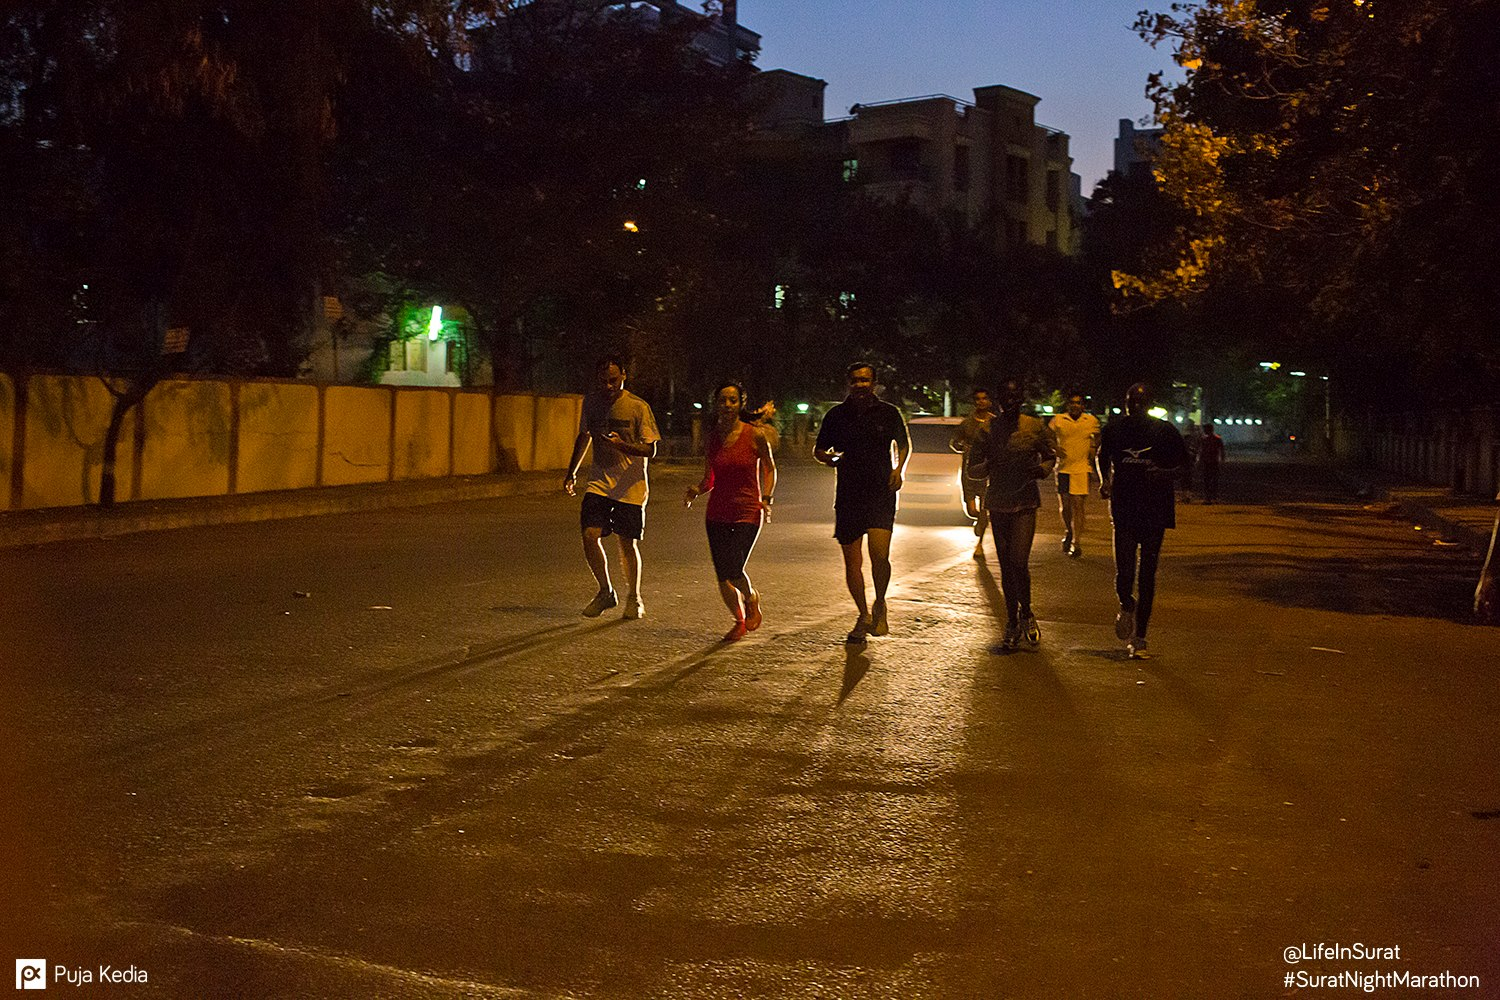 A small informal jog with International Runners. #PreRaceEvent.